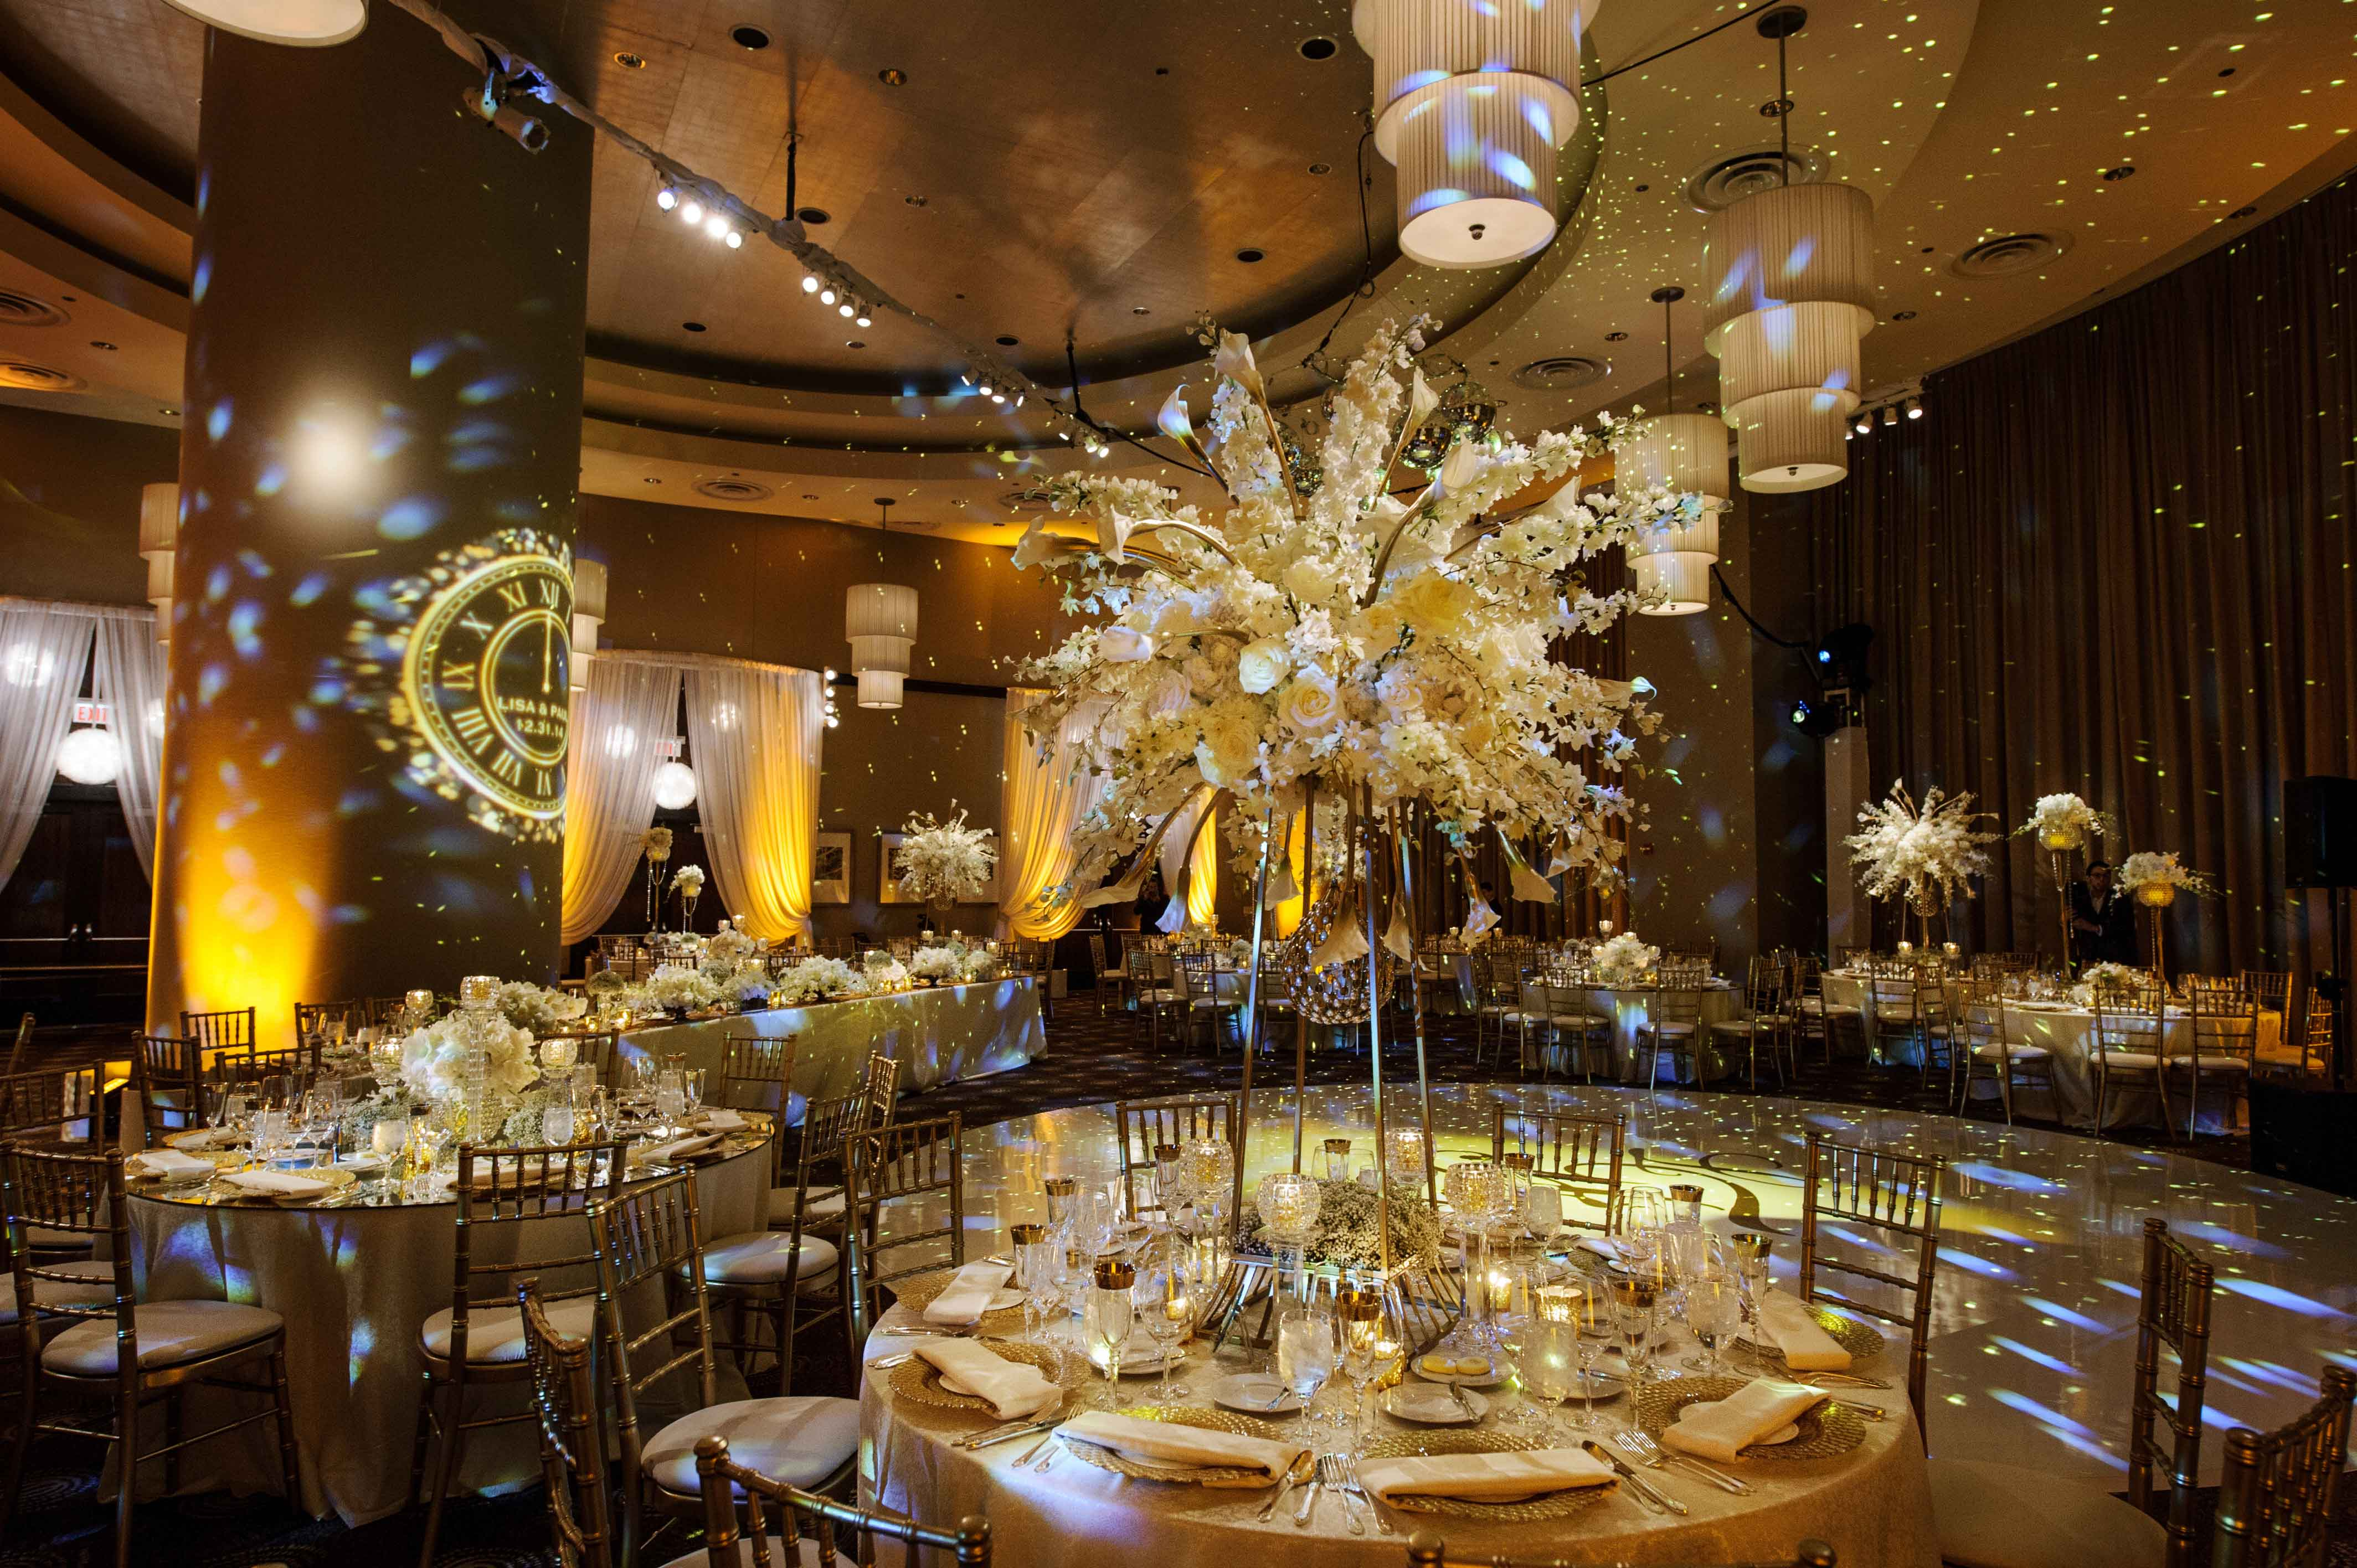 New Year's Eve ballroom wedding reception